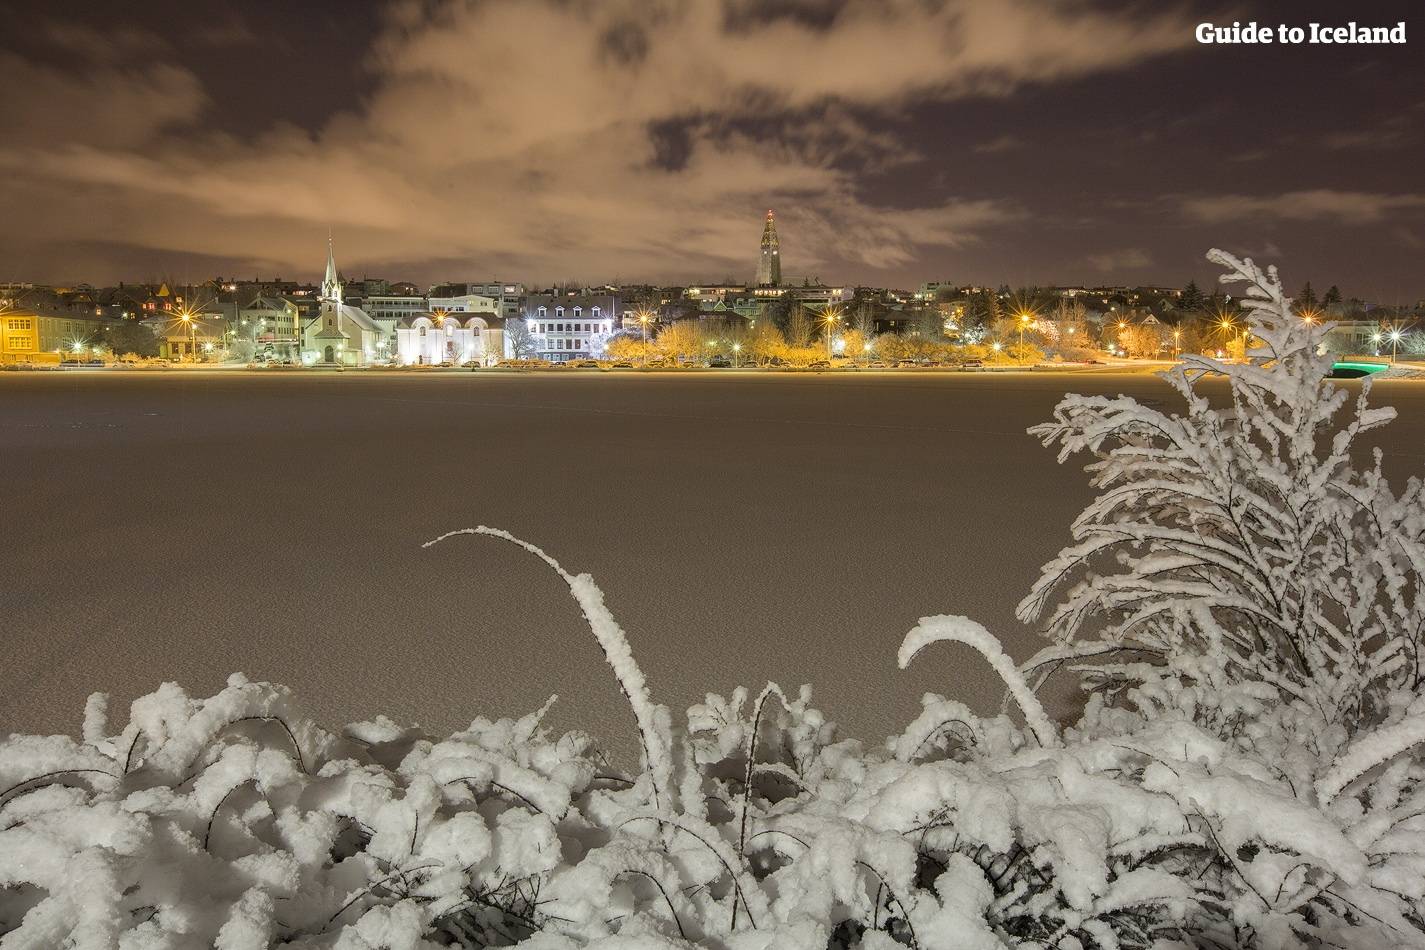 The lights of downtown Reykjavík illuminating the dark winter sky